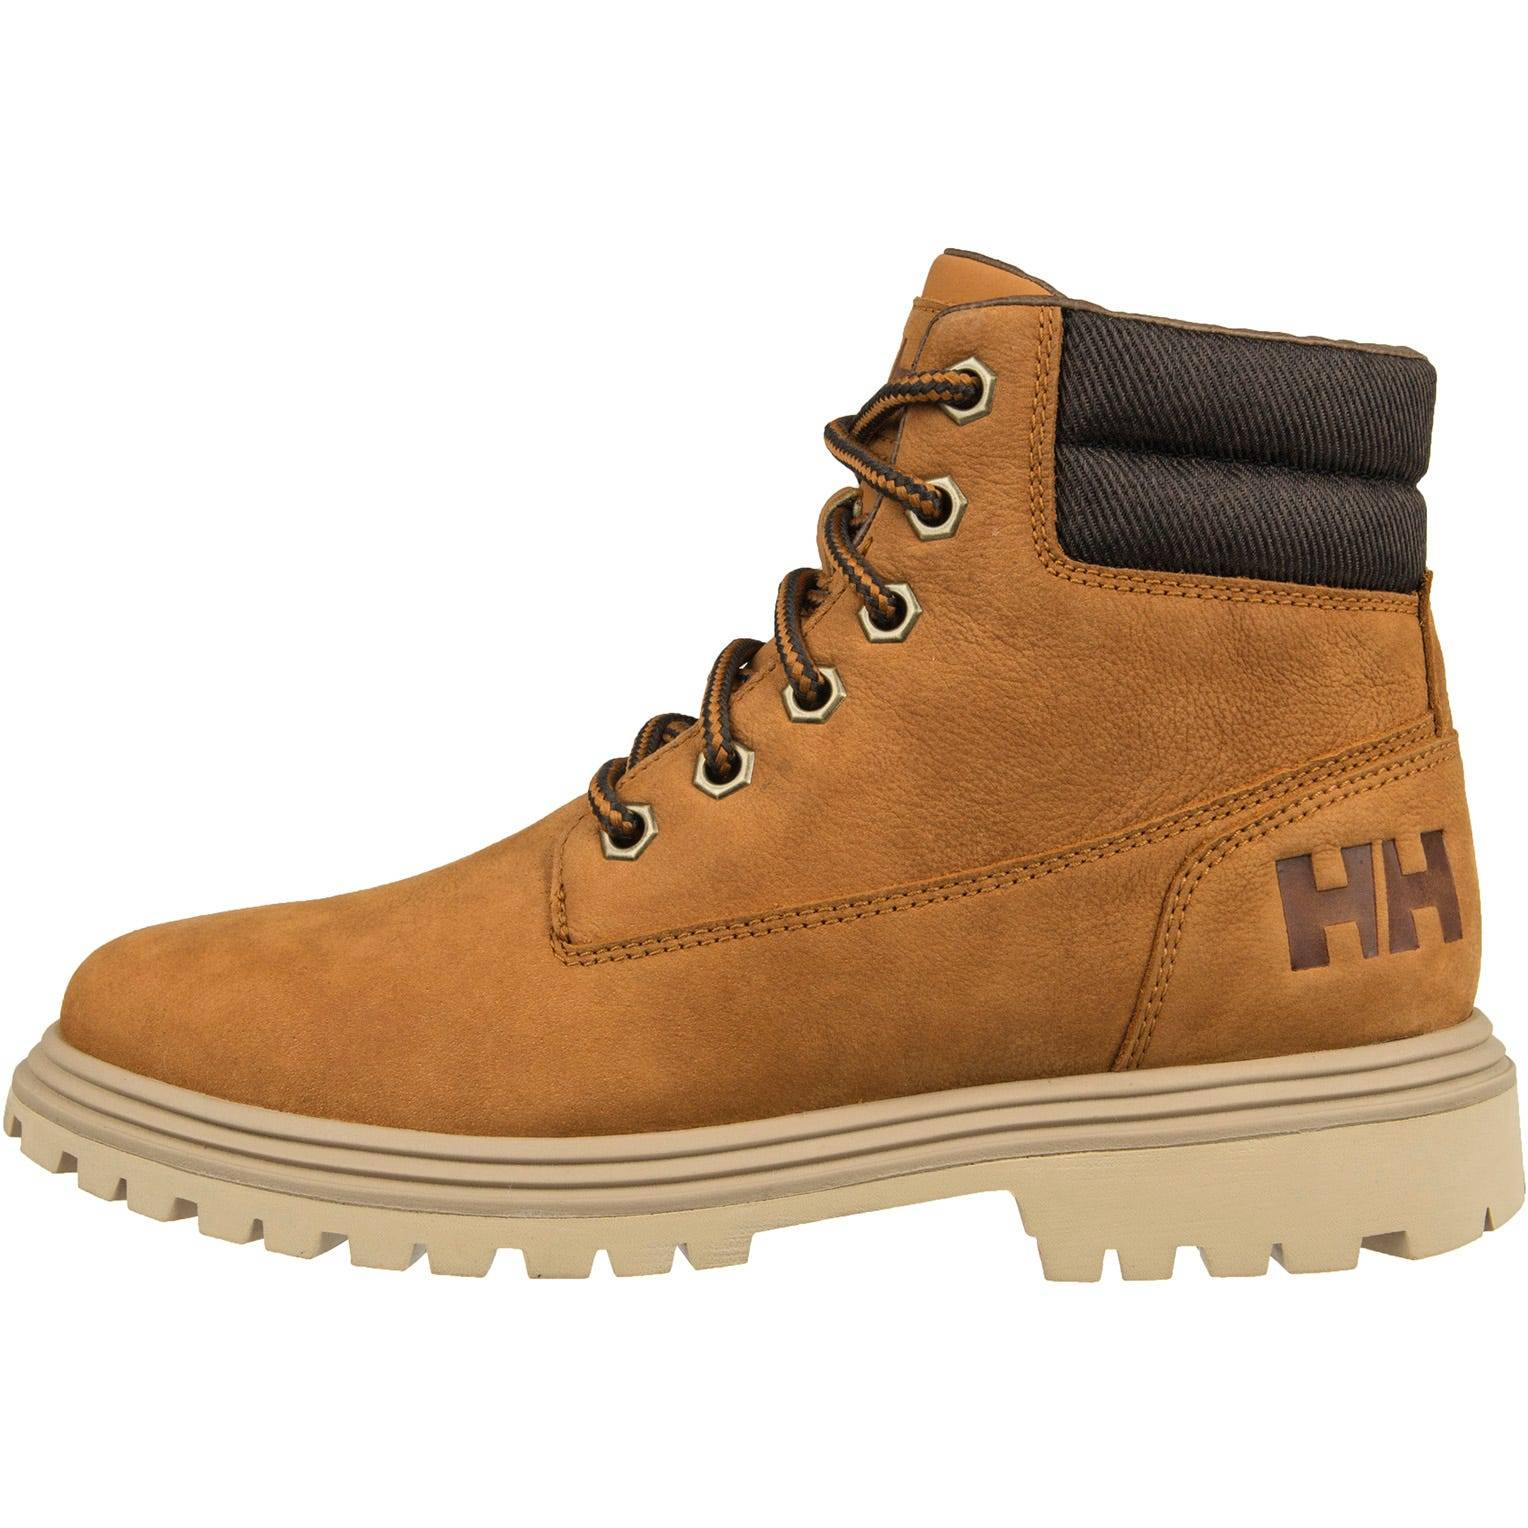 Helly Hansen Womens Casual Shoe Brown 5.5